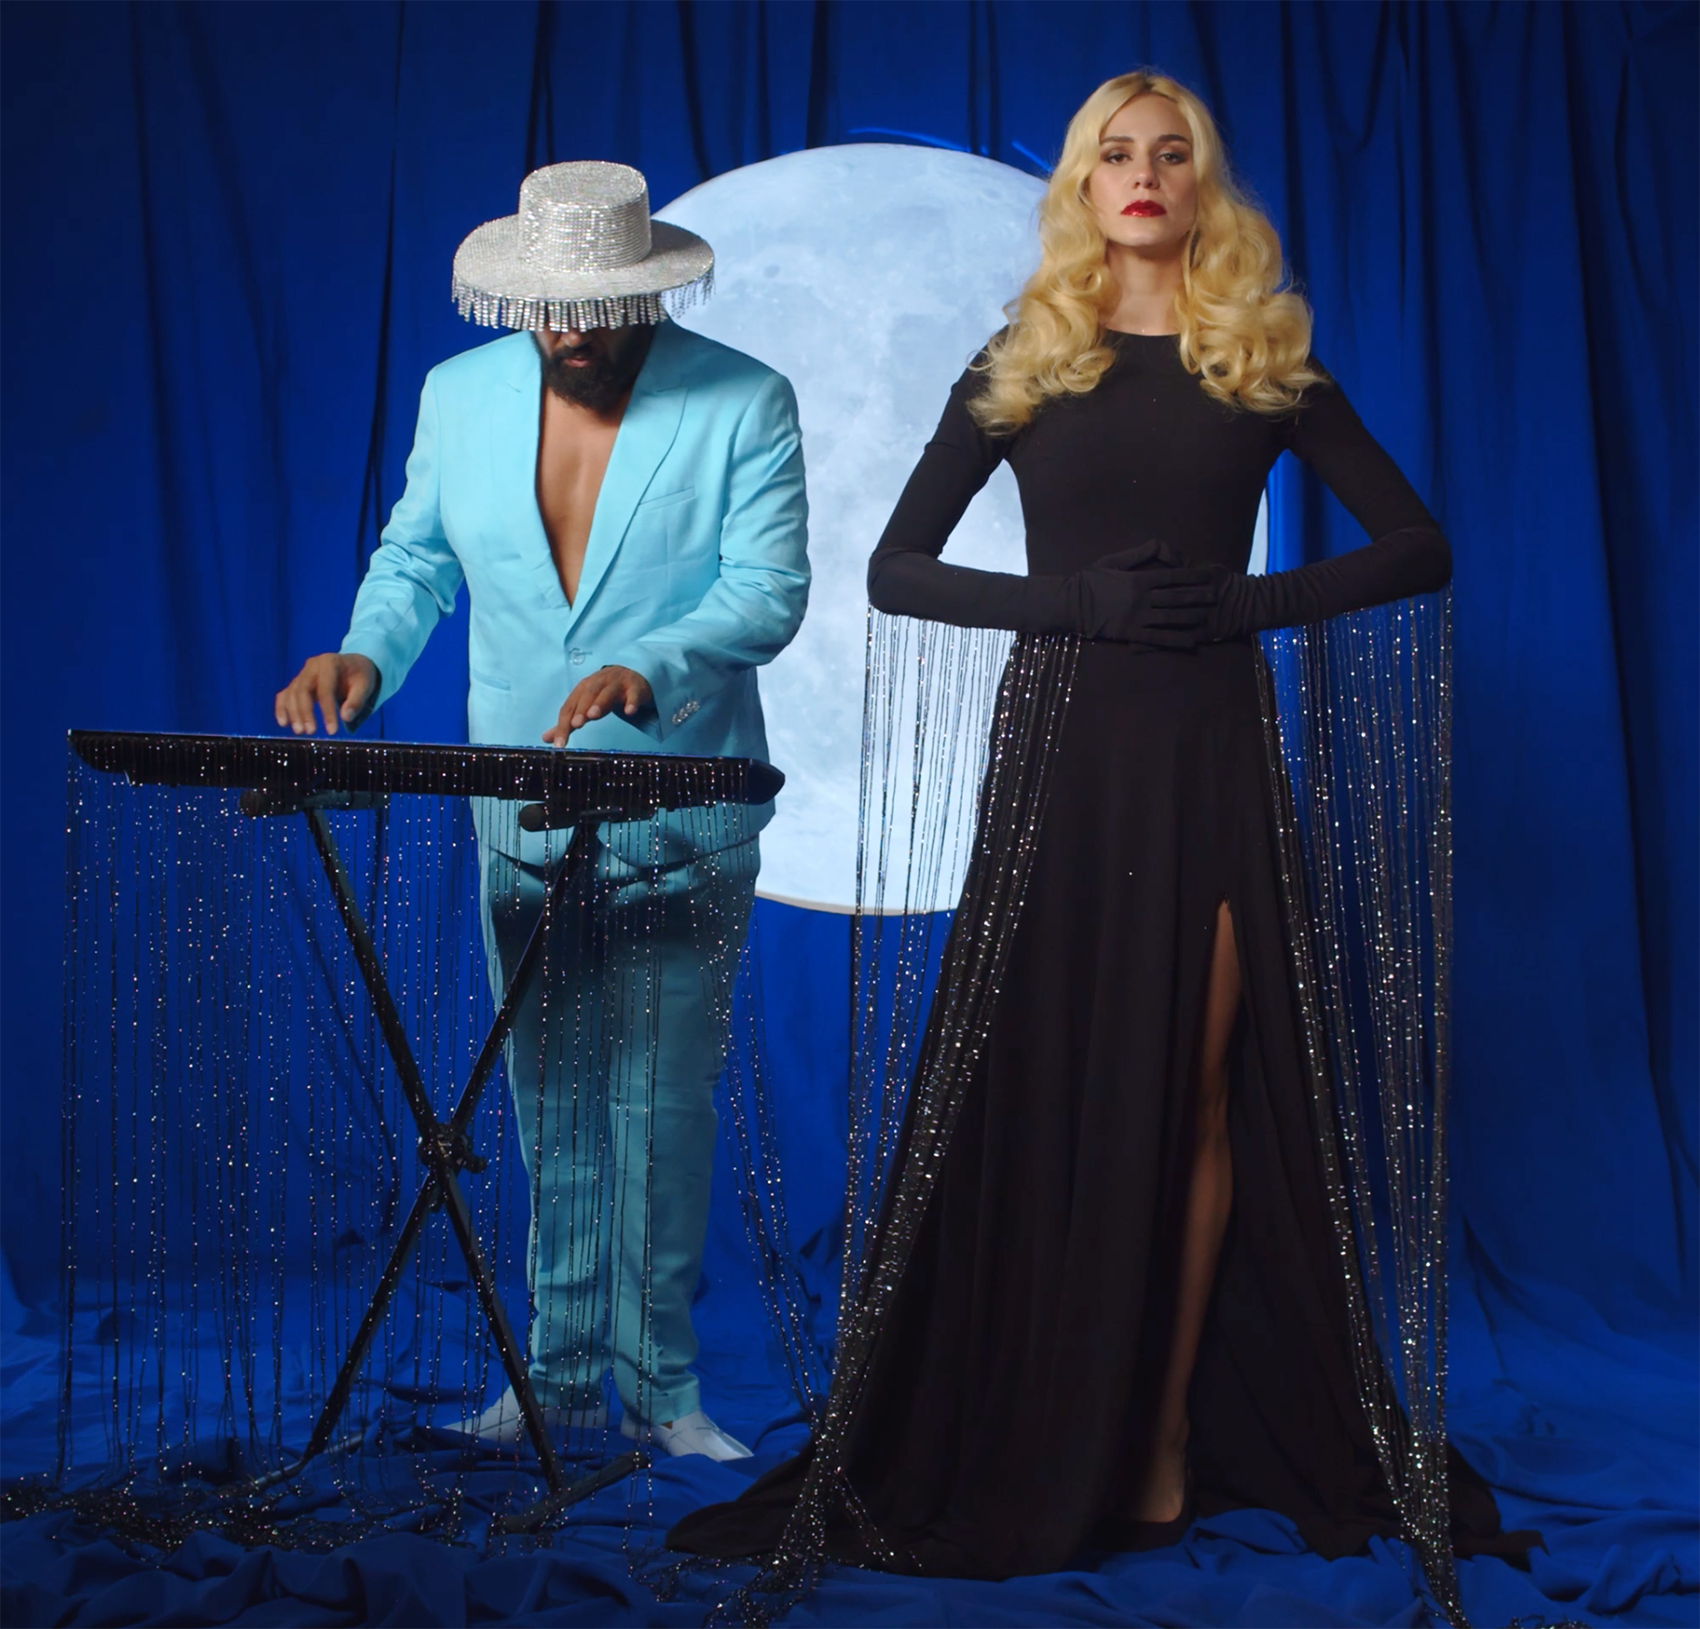 official still of  the music video  - Никой не може by Mila Robert and Azis.